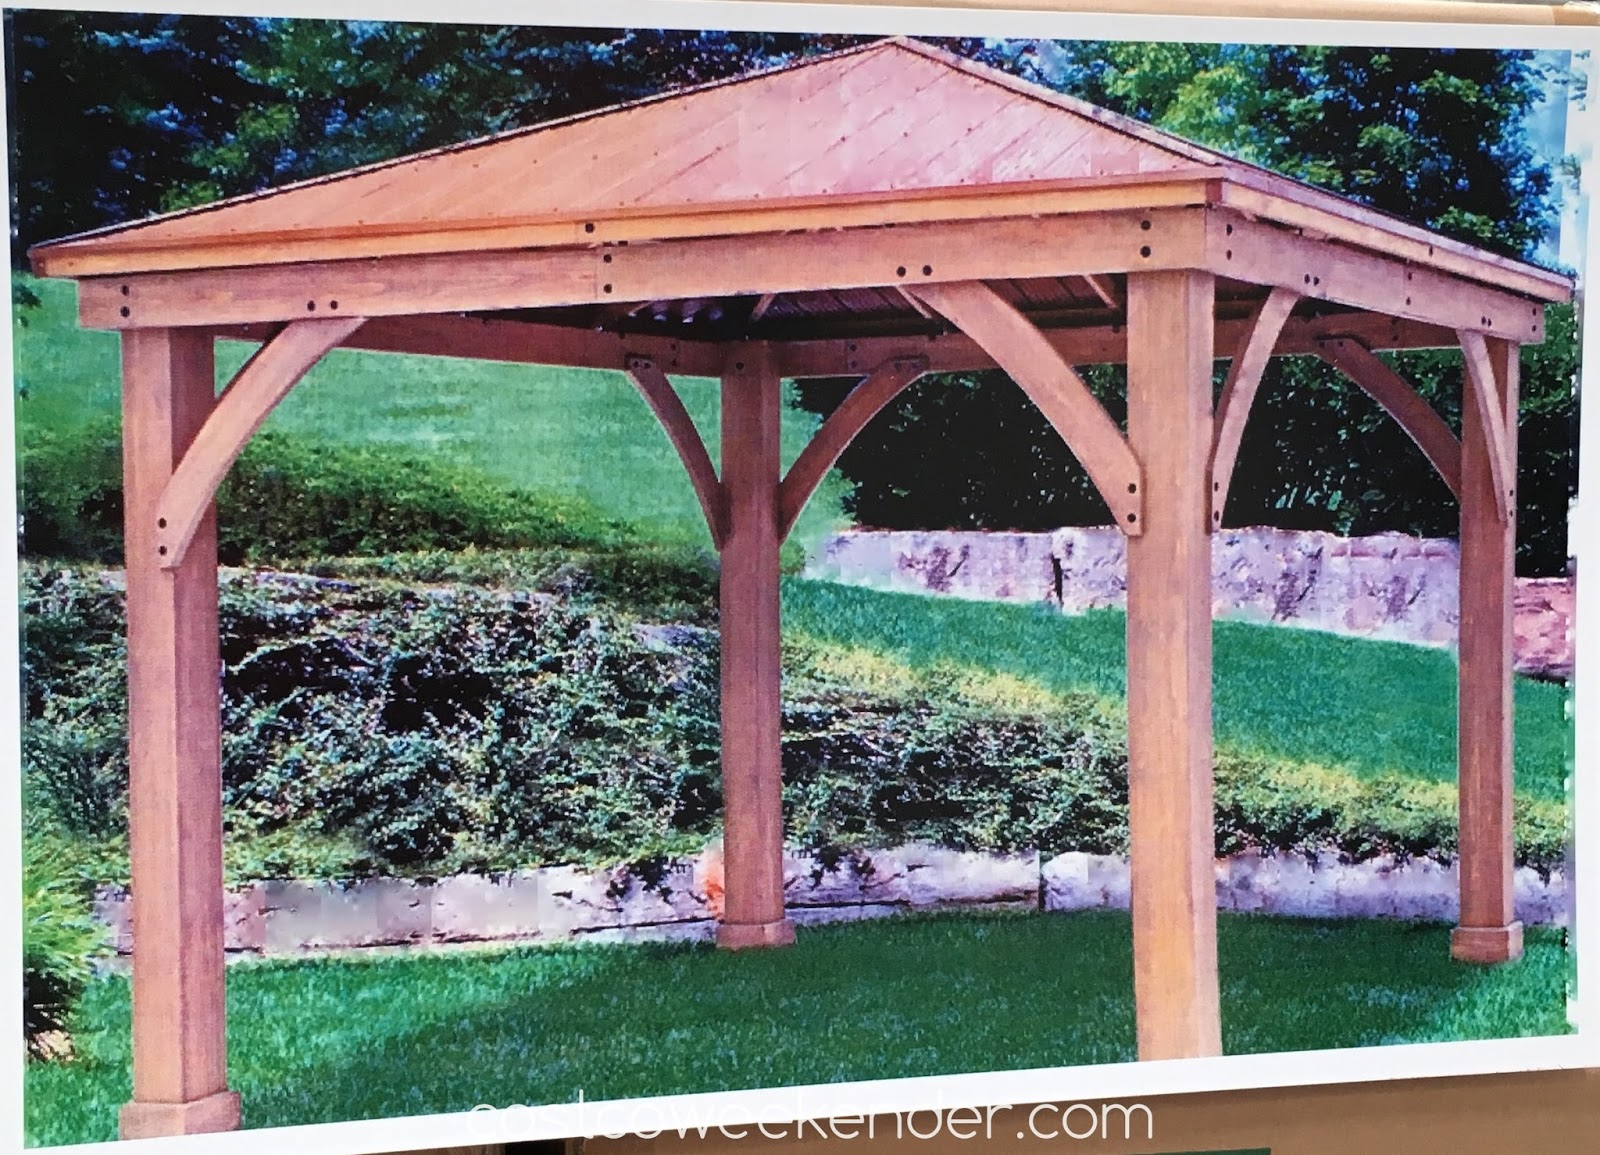 yardistry 12 39 x 12 39 wood gazebo with aluminum roof